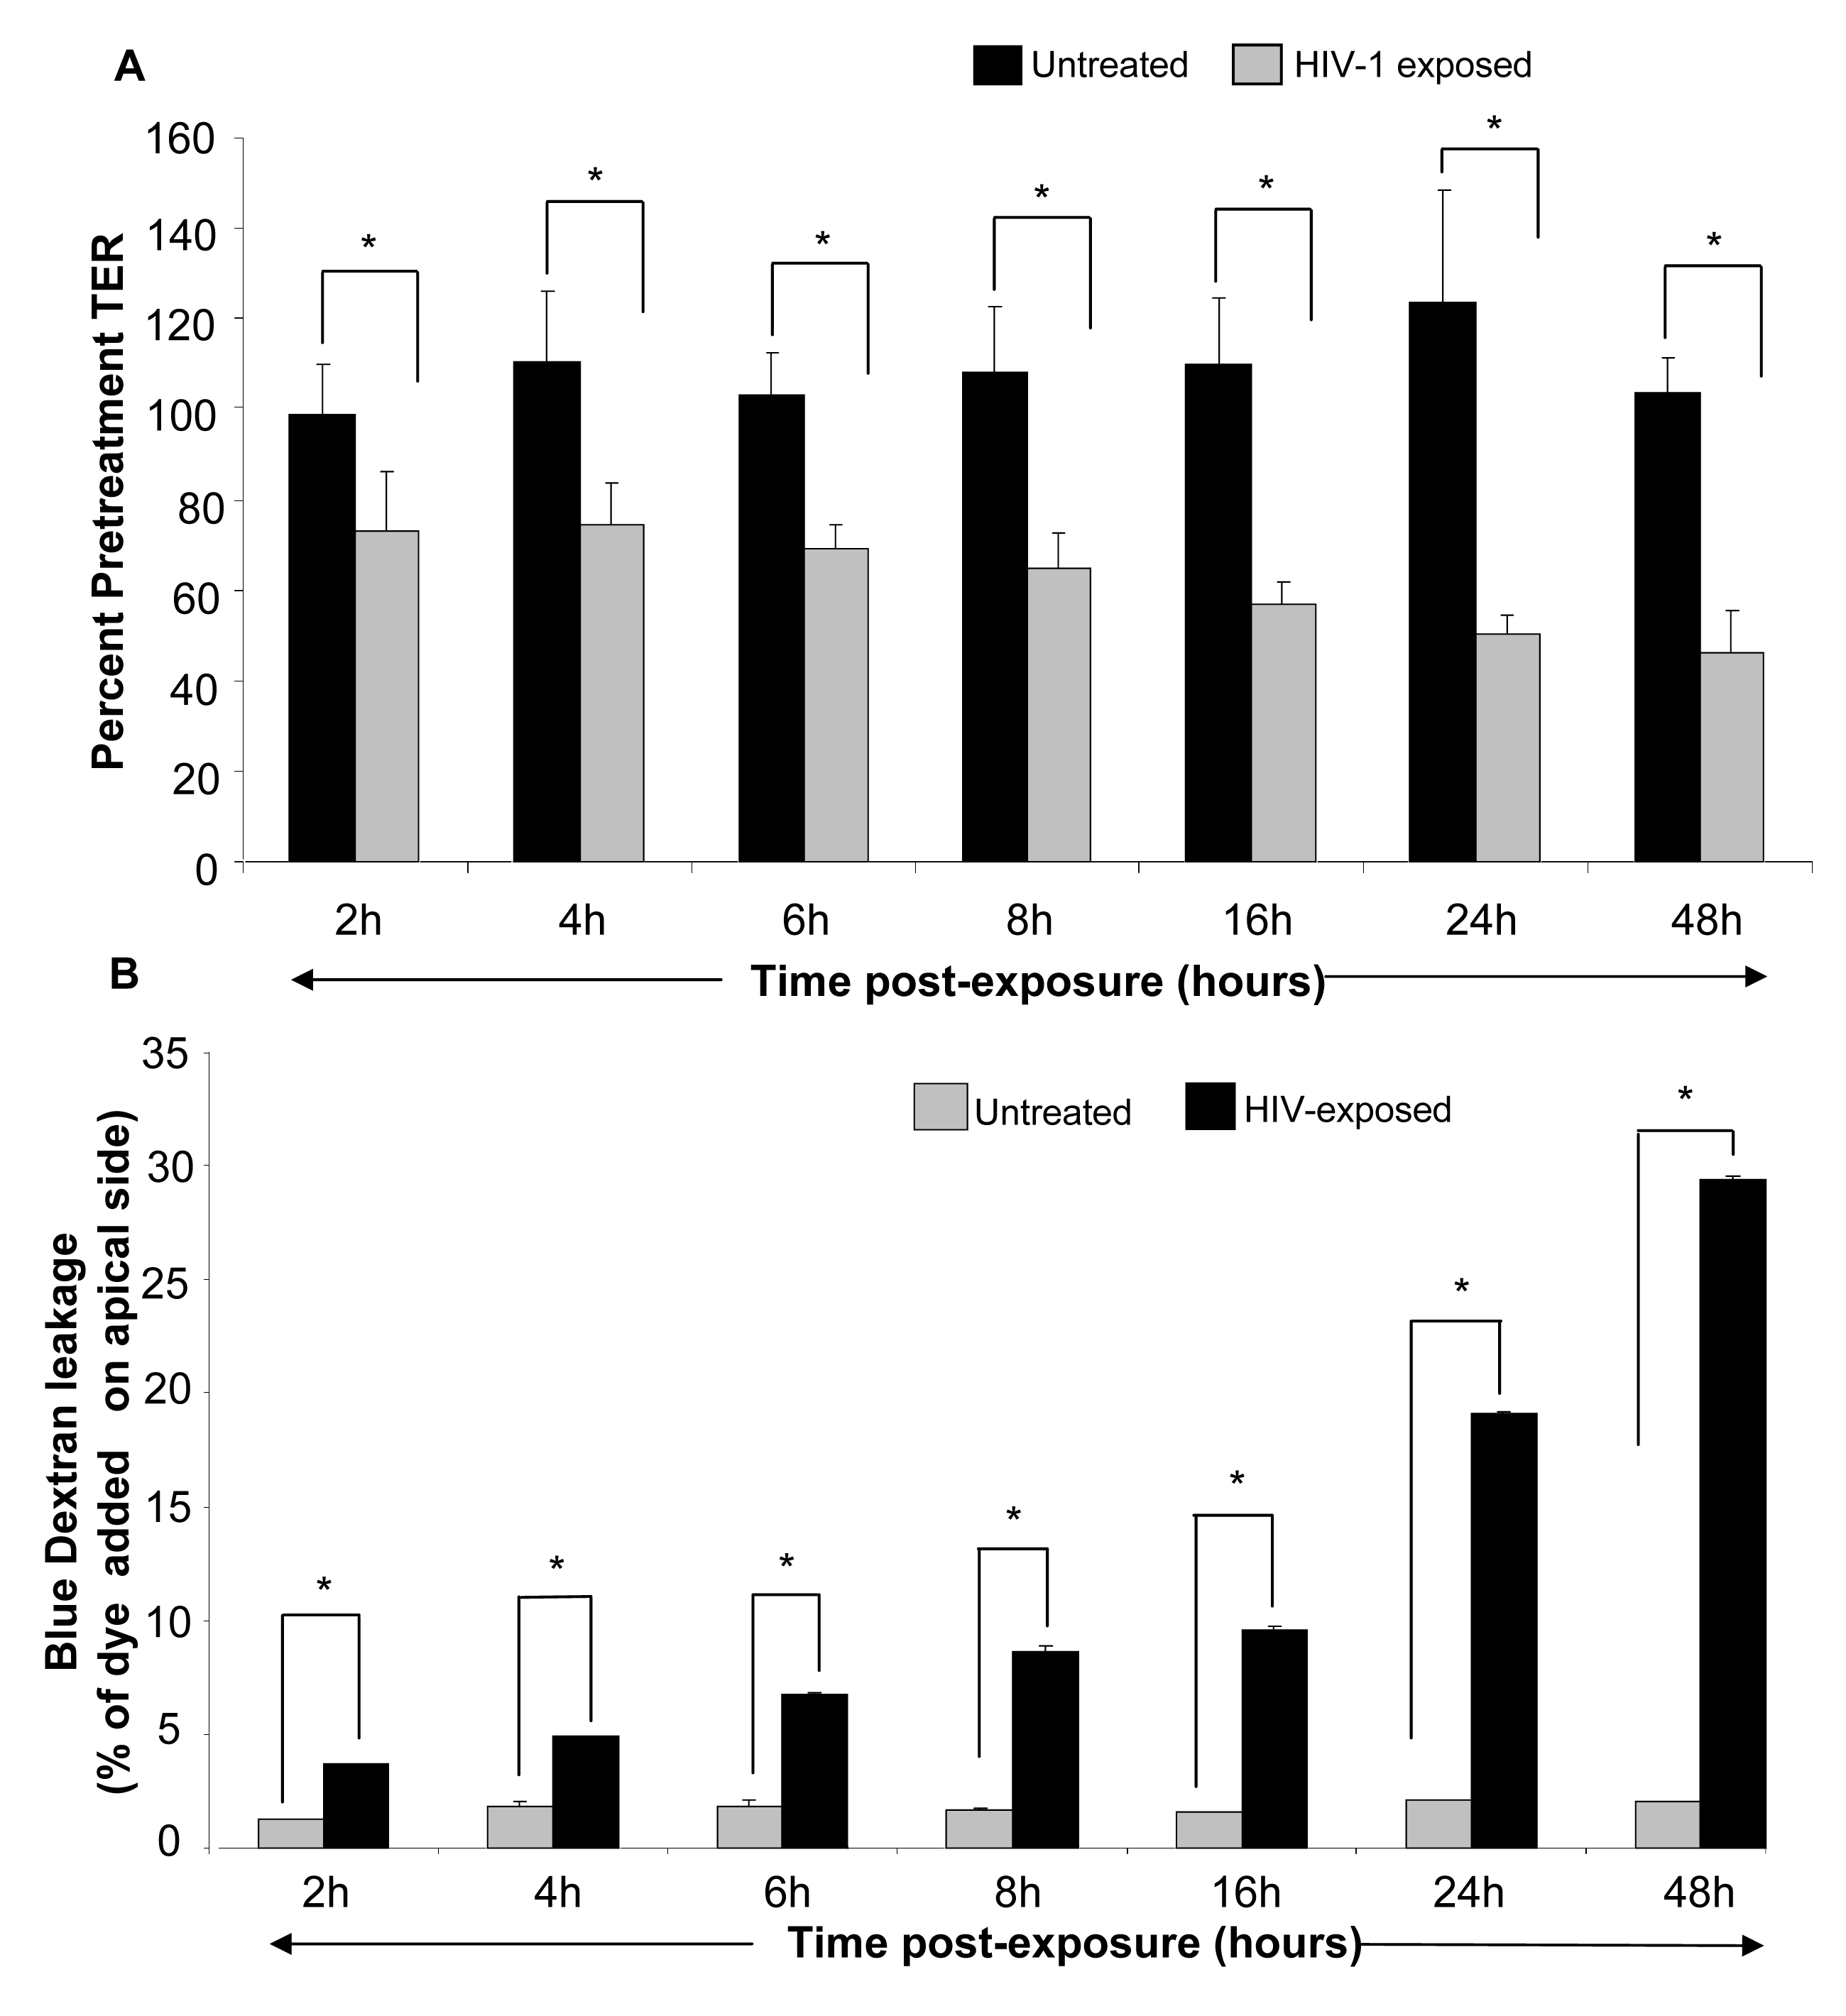 Primary genital epithelial monolayers were exposed to HIV-ADA (R5 strain, 10<sup>6</sup> infectious viral units/ml, p24 280ng/ml ) for 2h, 4h, 6h, 8h, 16h, 24h and 48h.